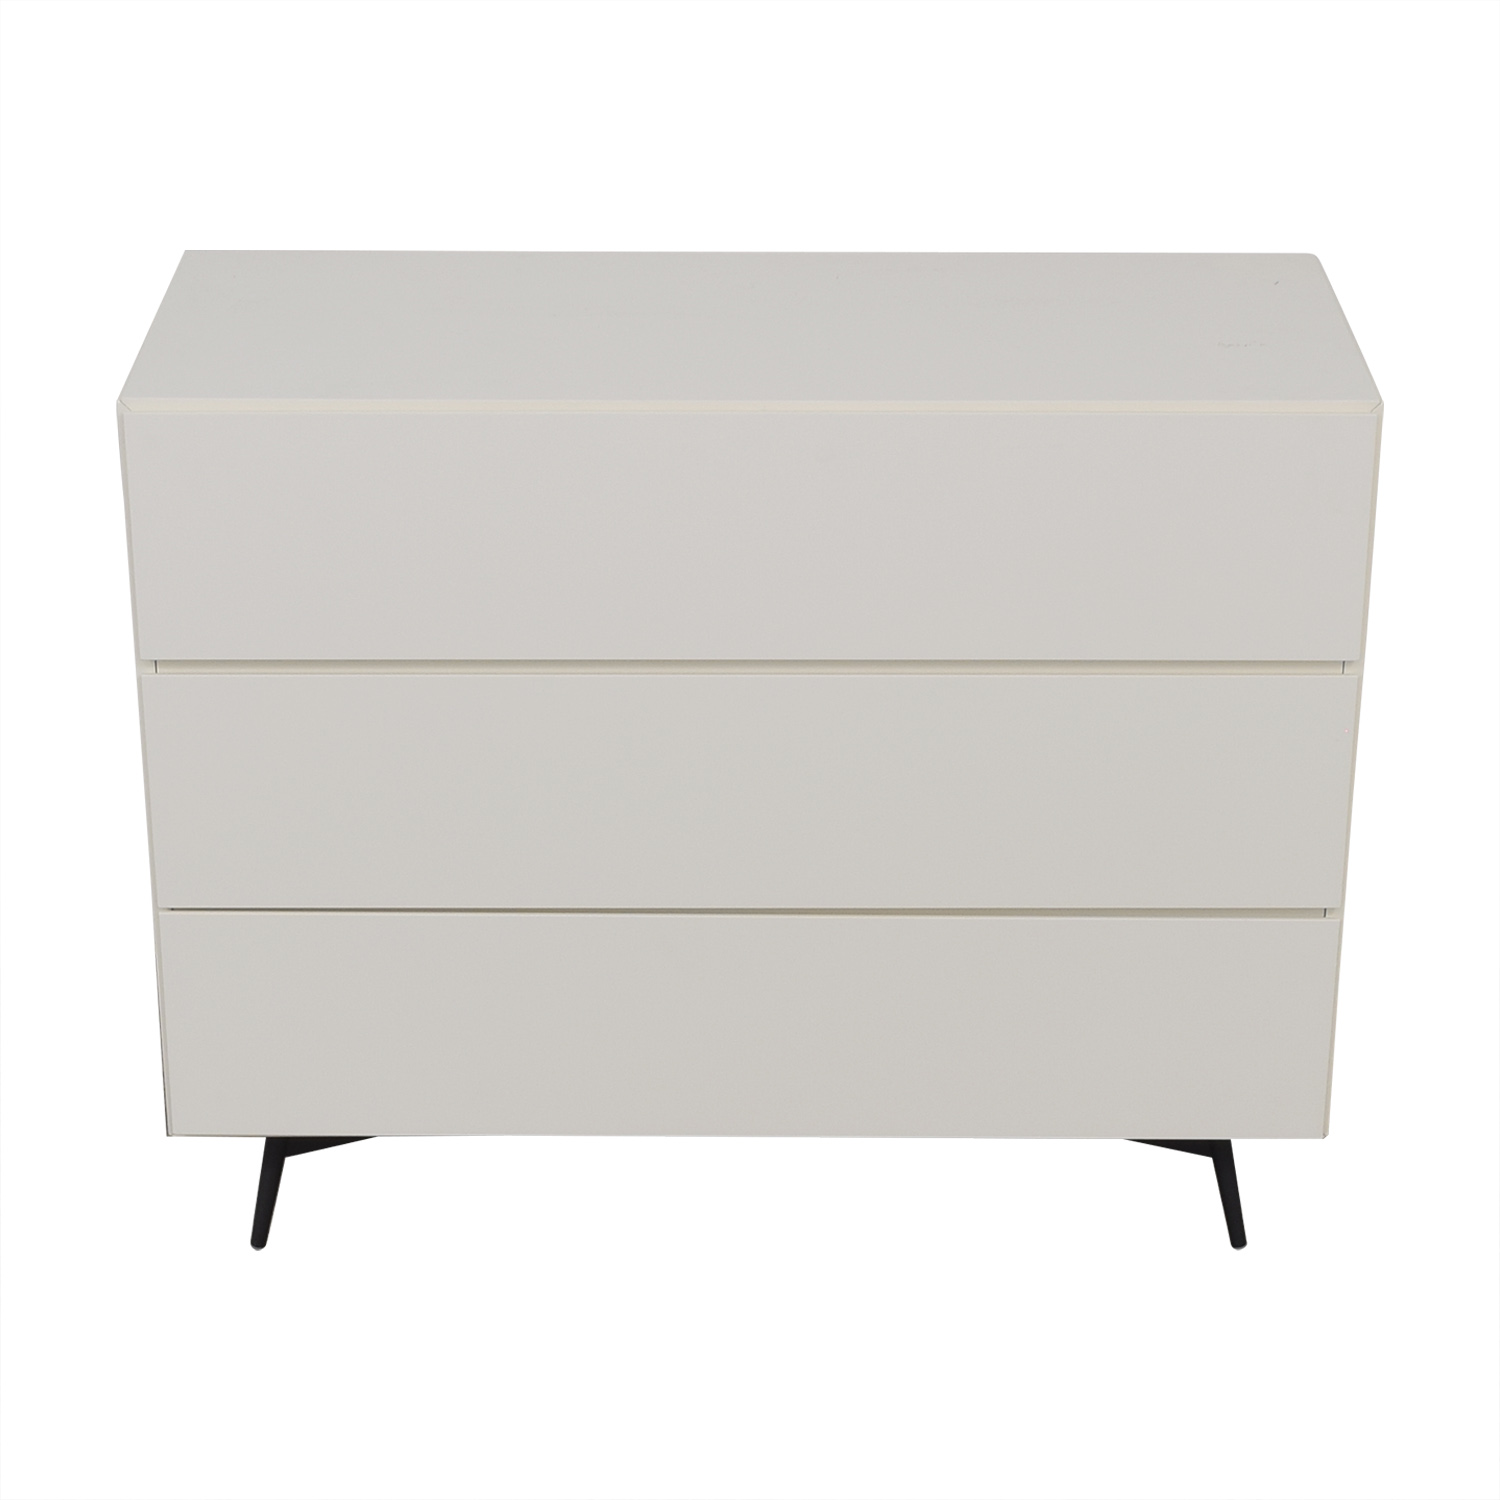 BoConcept BoConcept Lugano Chest nj